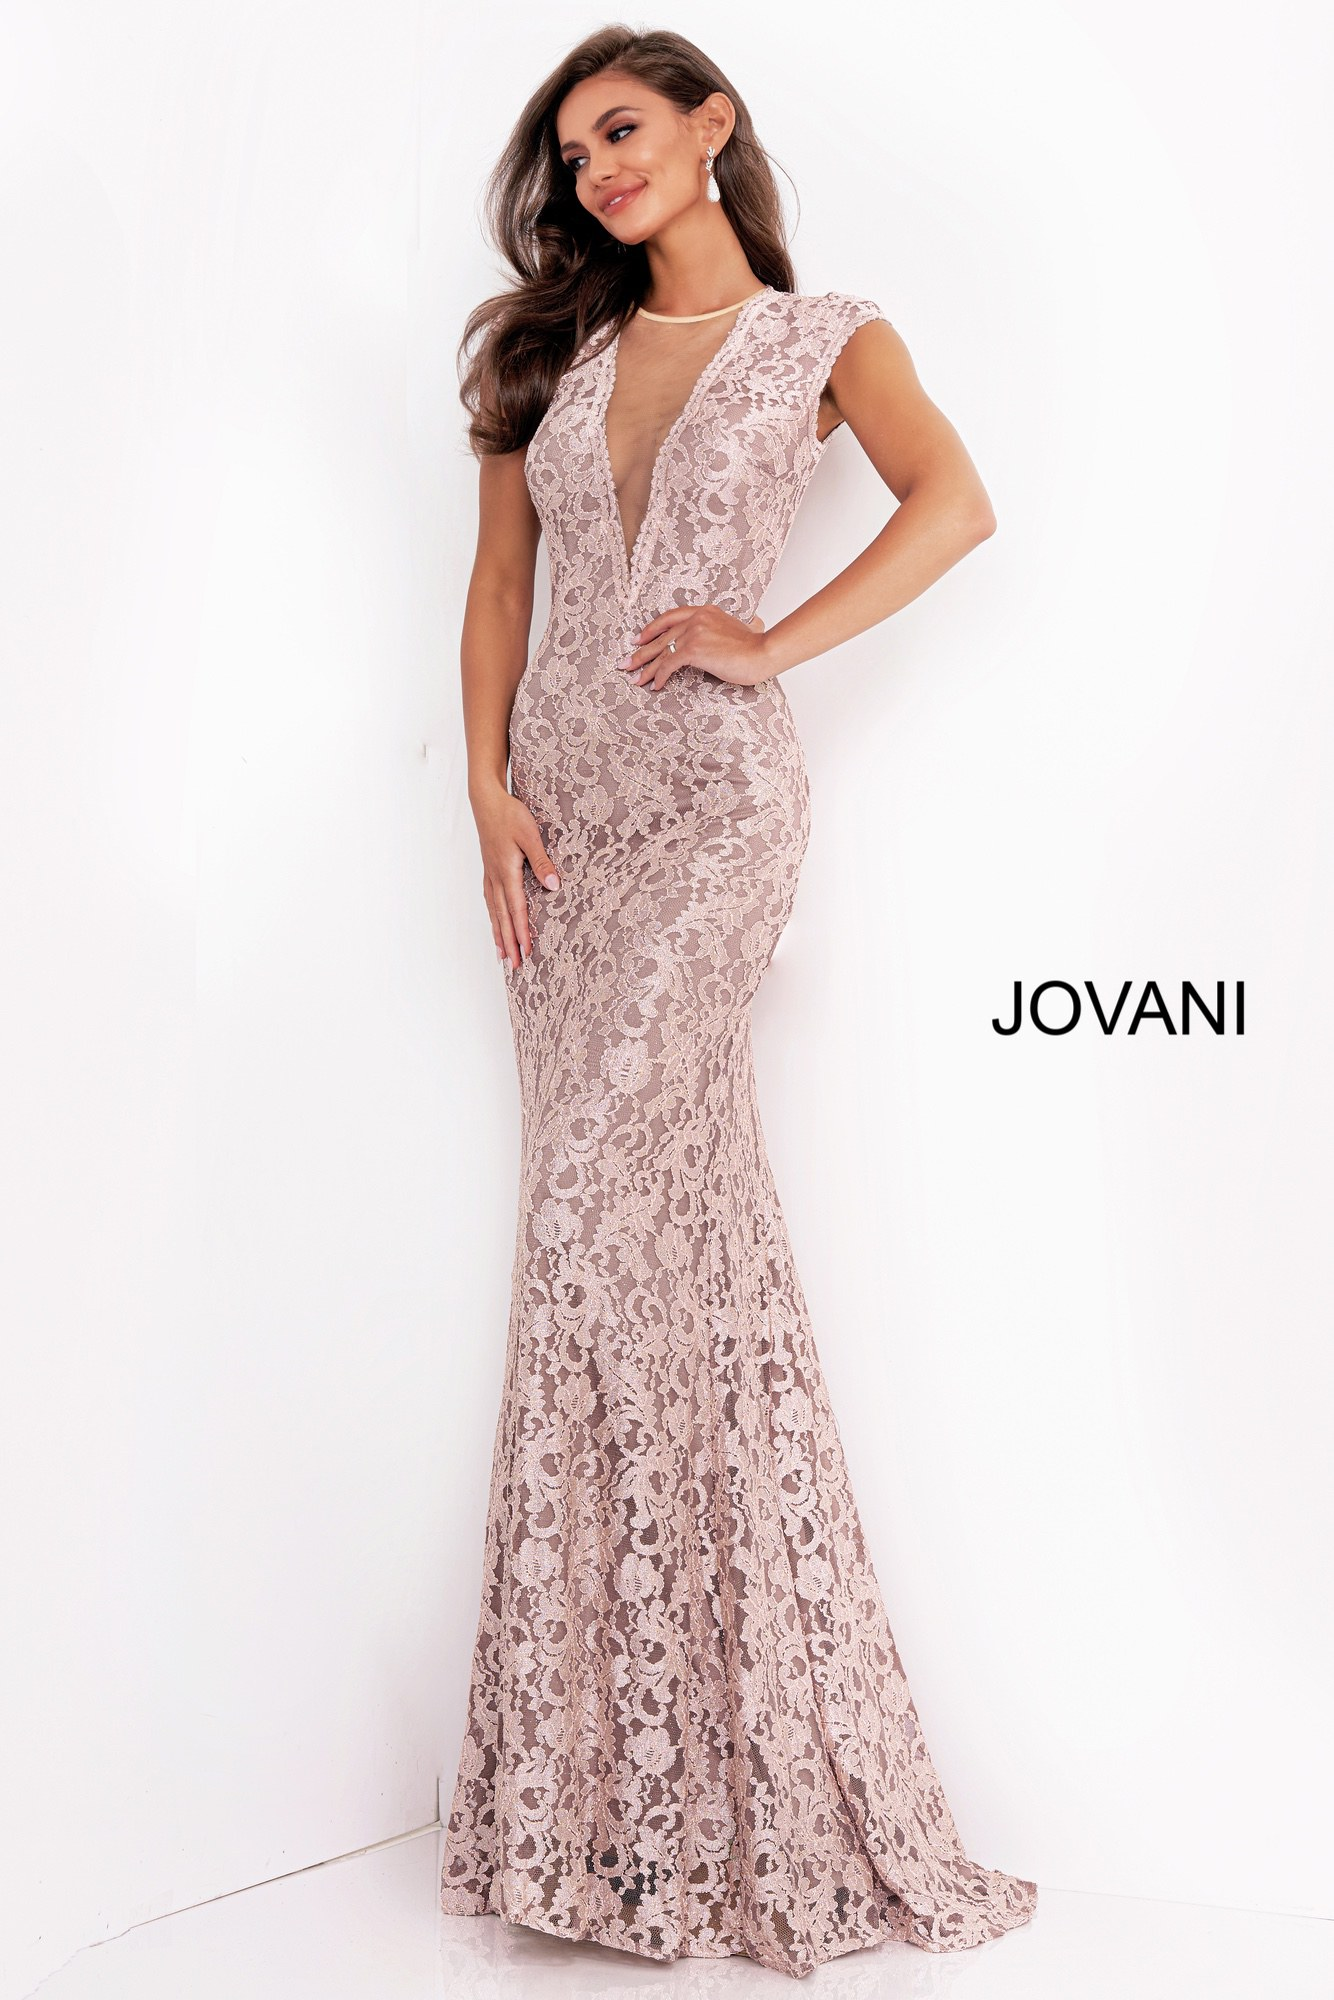 Jovani 8118 Taupe Open Back Lace Evening Dress